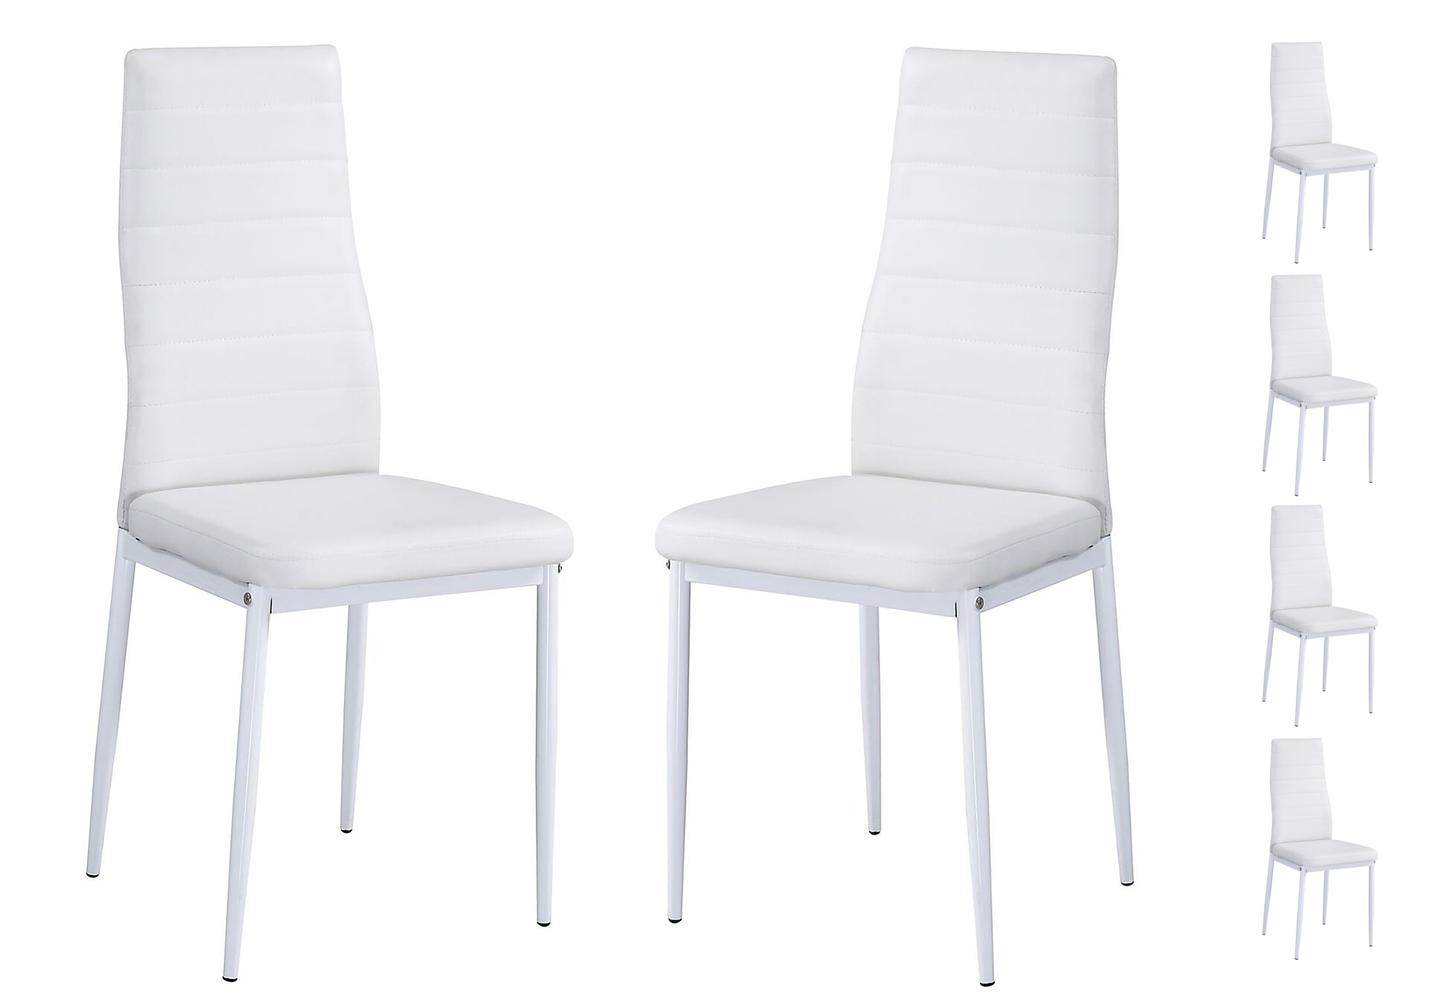 Lot 6 chaises design blanc FLY.1